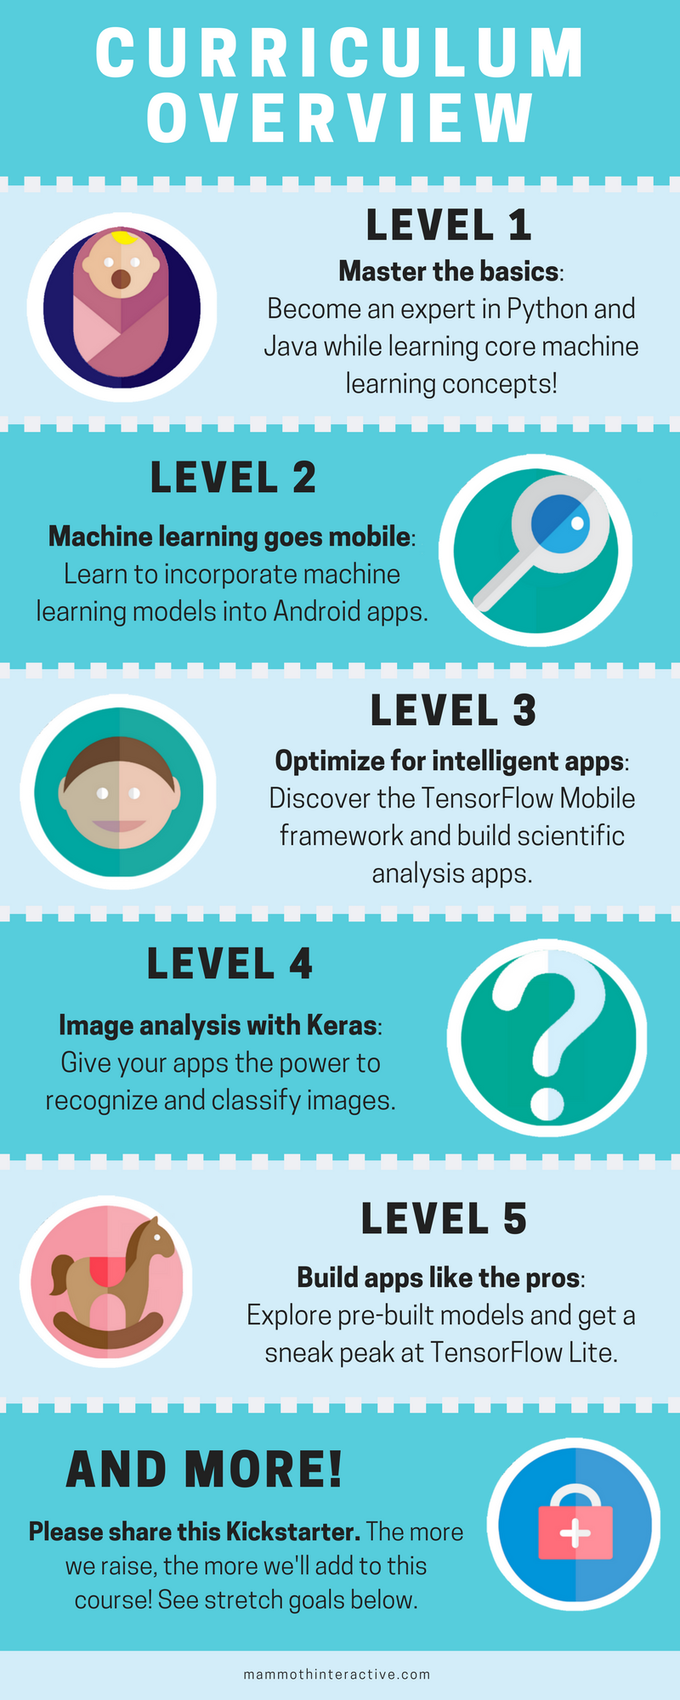 Mobile Machine Learning: The Complete Masterclass by Mammoth